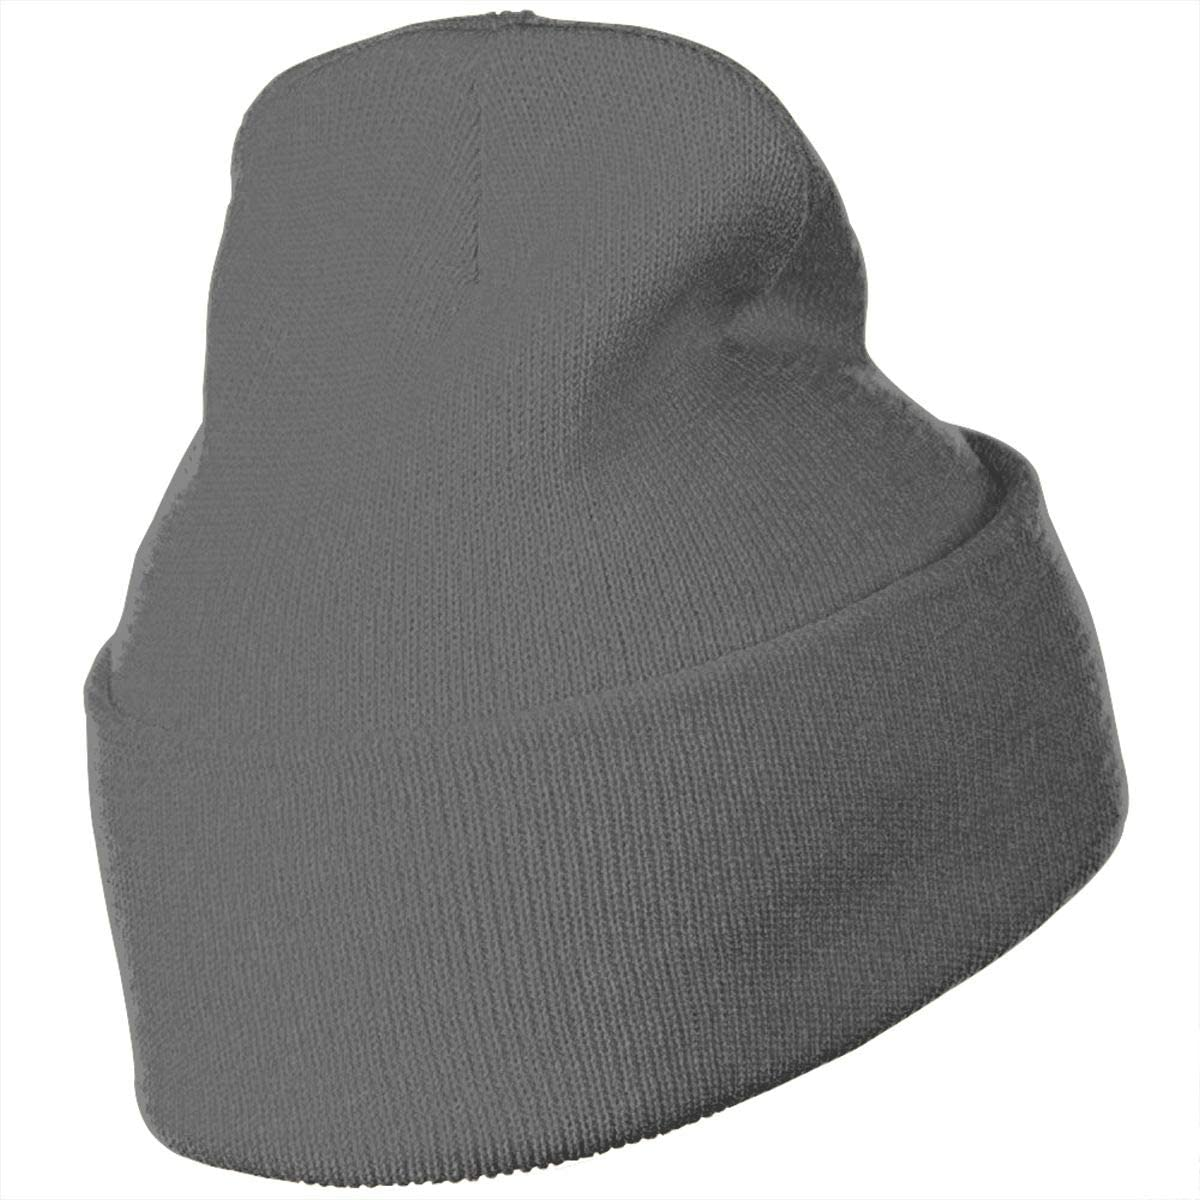 Hey Arnold Classic Winter Warm Knit Hat Beanie Cap for Men Women